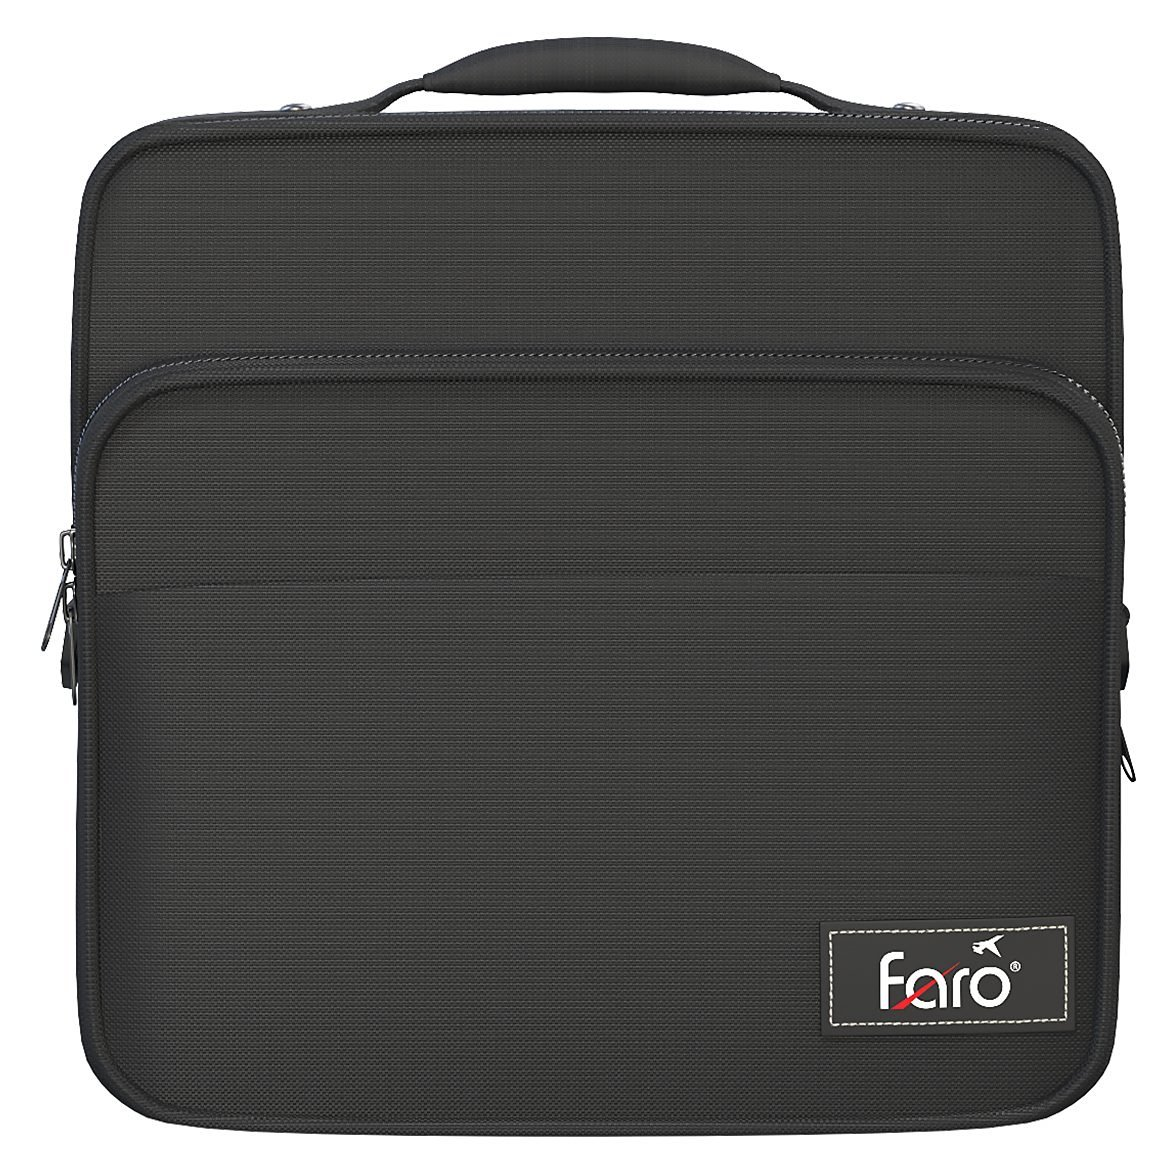 Faro Premium Luxury Aviation Headset Carry Bag